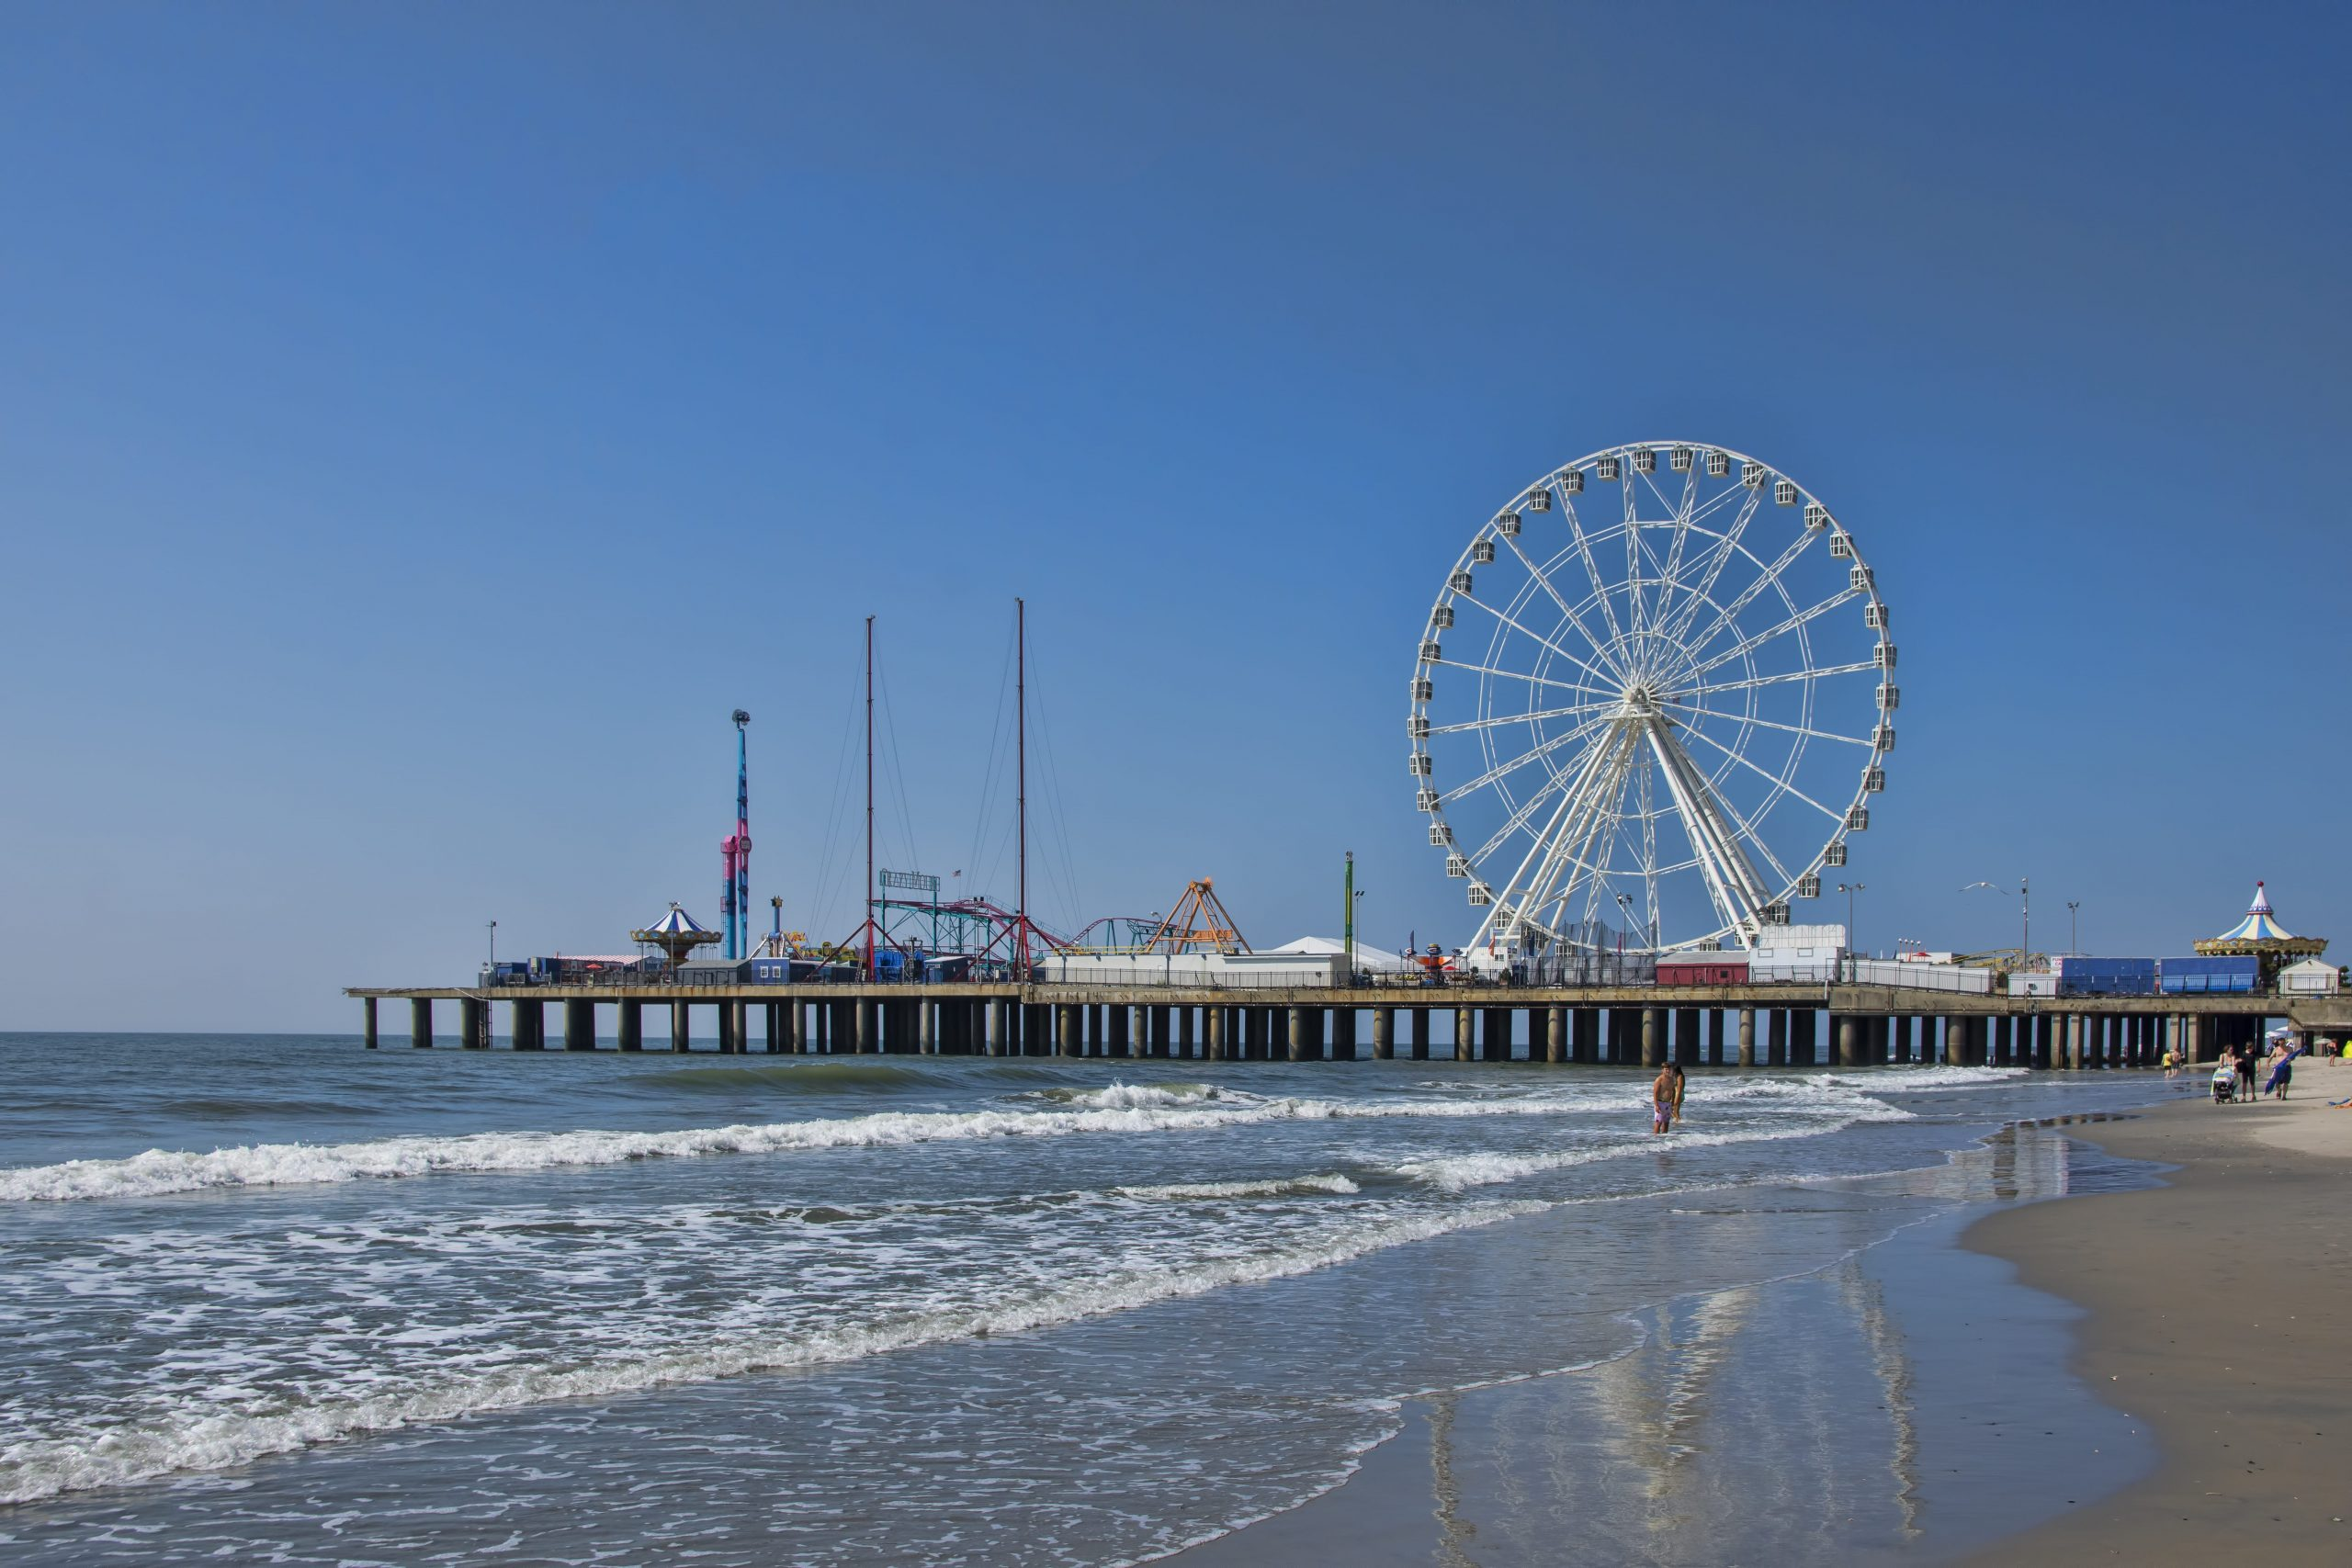 Take An Adventurous Ride On The Steel Pier - Crazy Experience To Try In Atlantic City